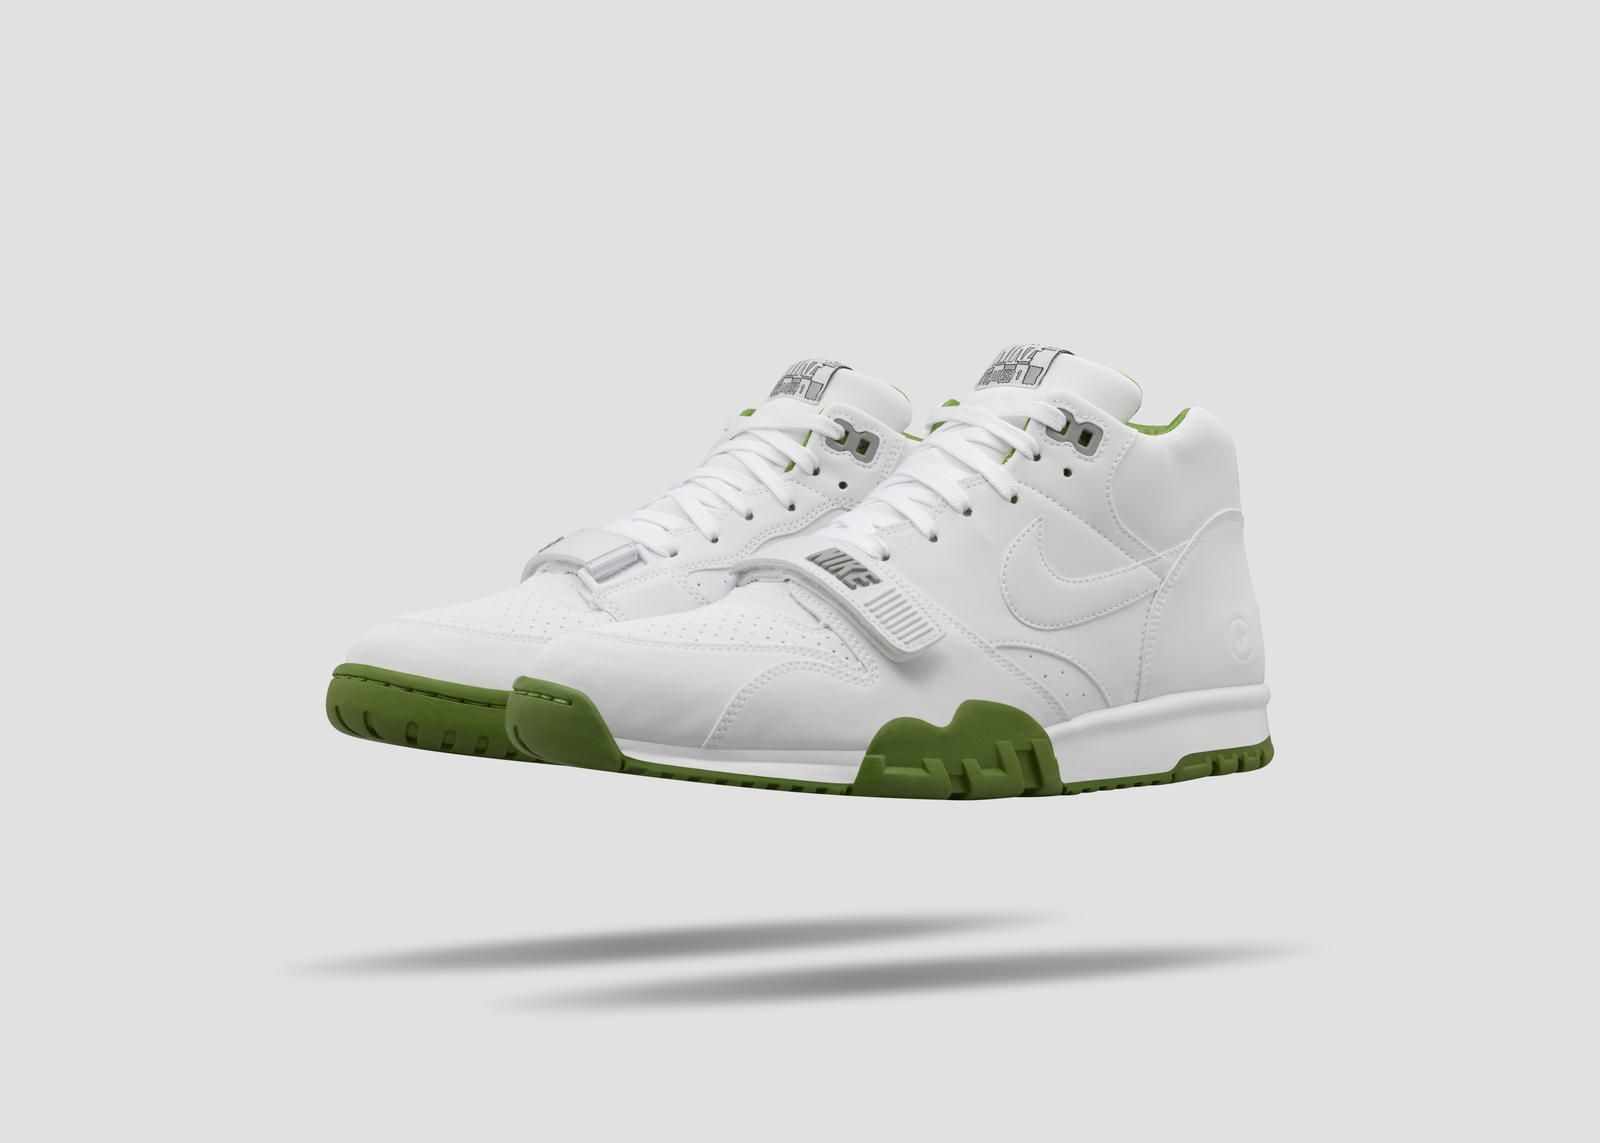 X Green Going Nikecourt Air 1 Fragment Mid Trainer 6axv7nH